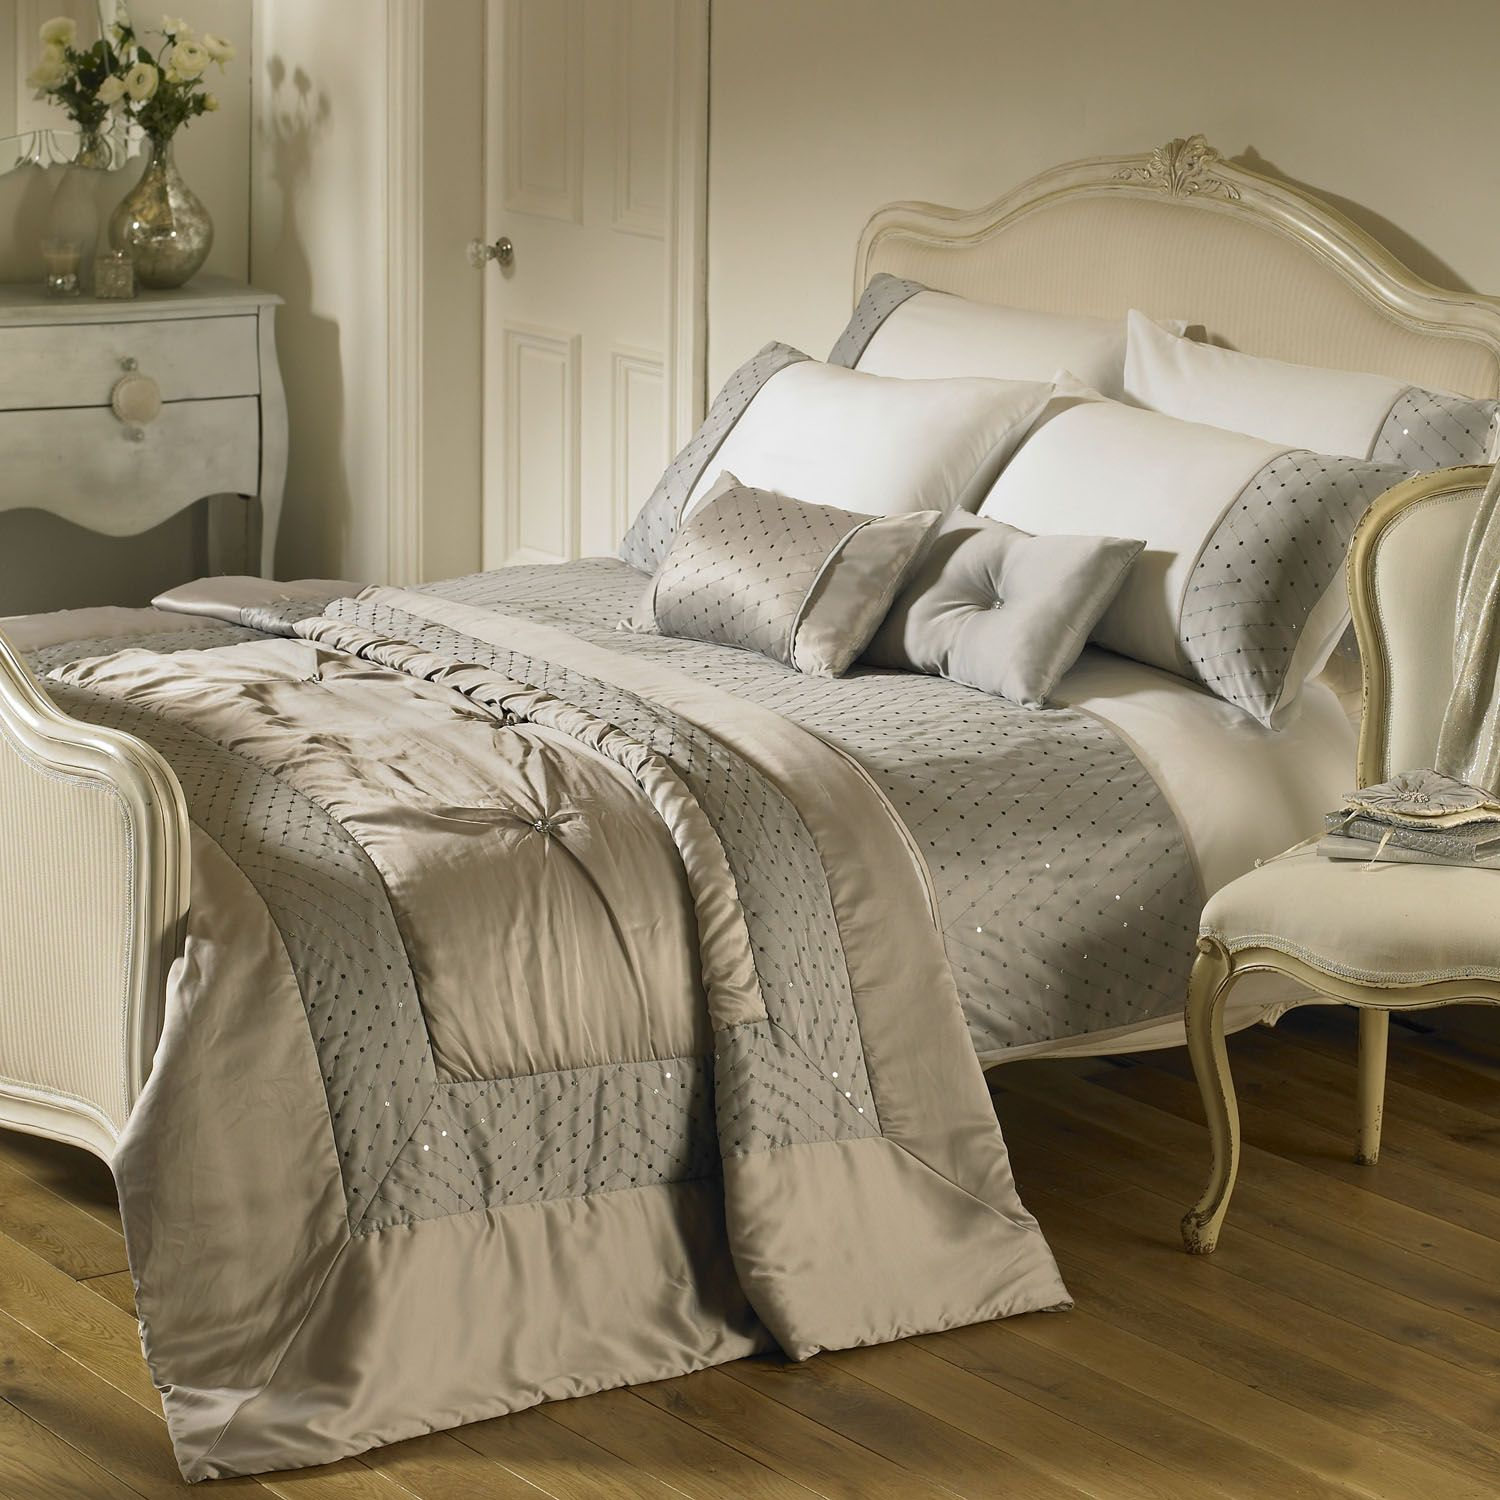 Master Bedroom Bedding Sets Riva Home Romantica Bedding Set In Silver Next Day Delivery Riva